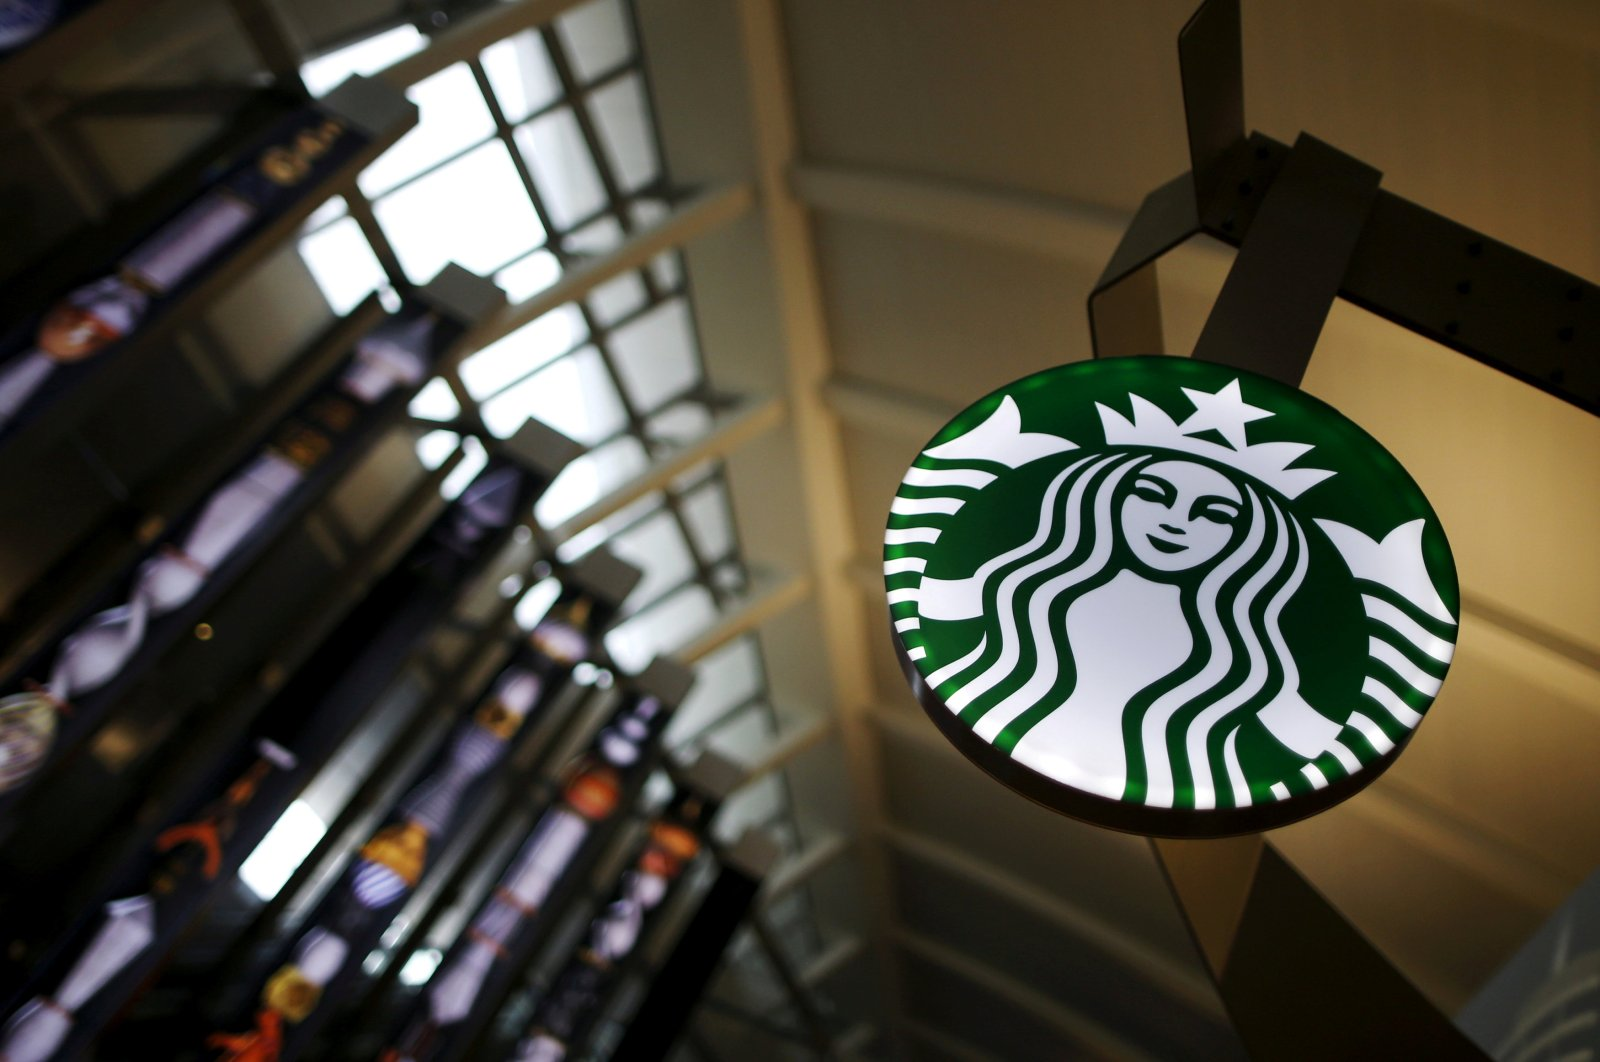 A Starbucks store is seen inside the Tom Bradley Terminal at LAX airport in Los Angeles, C.A., Oct. 27, 2015.  (REUTERS Photo)